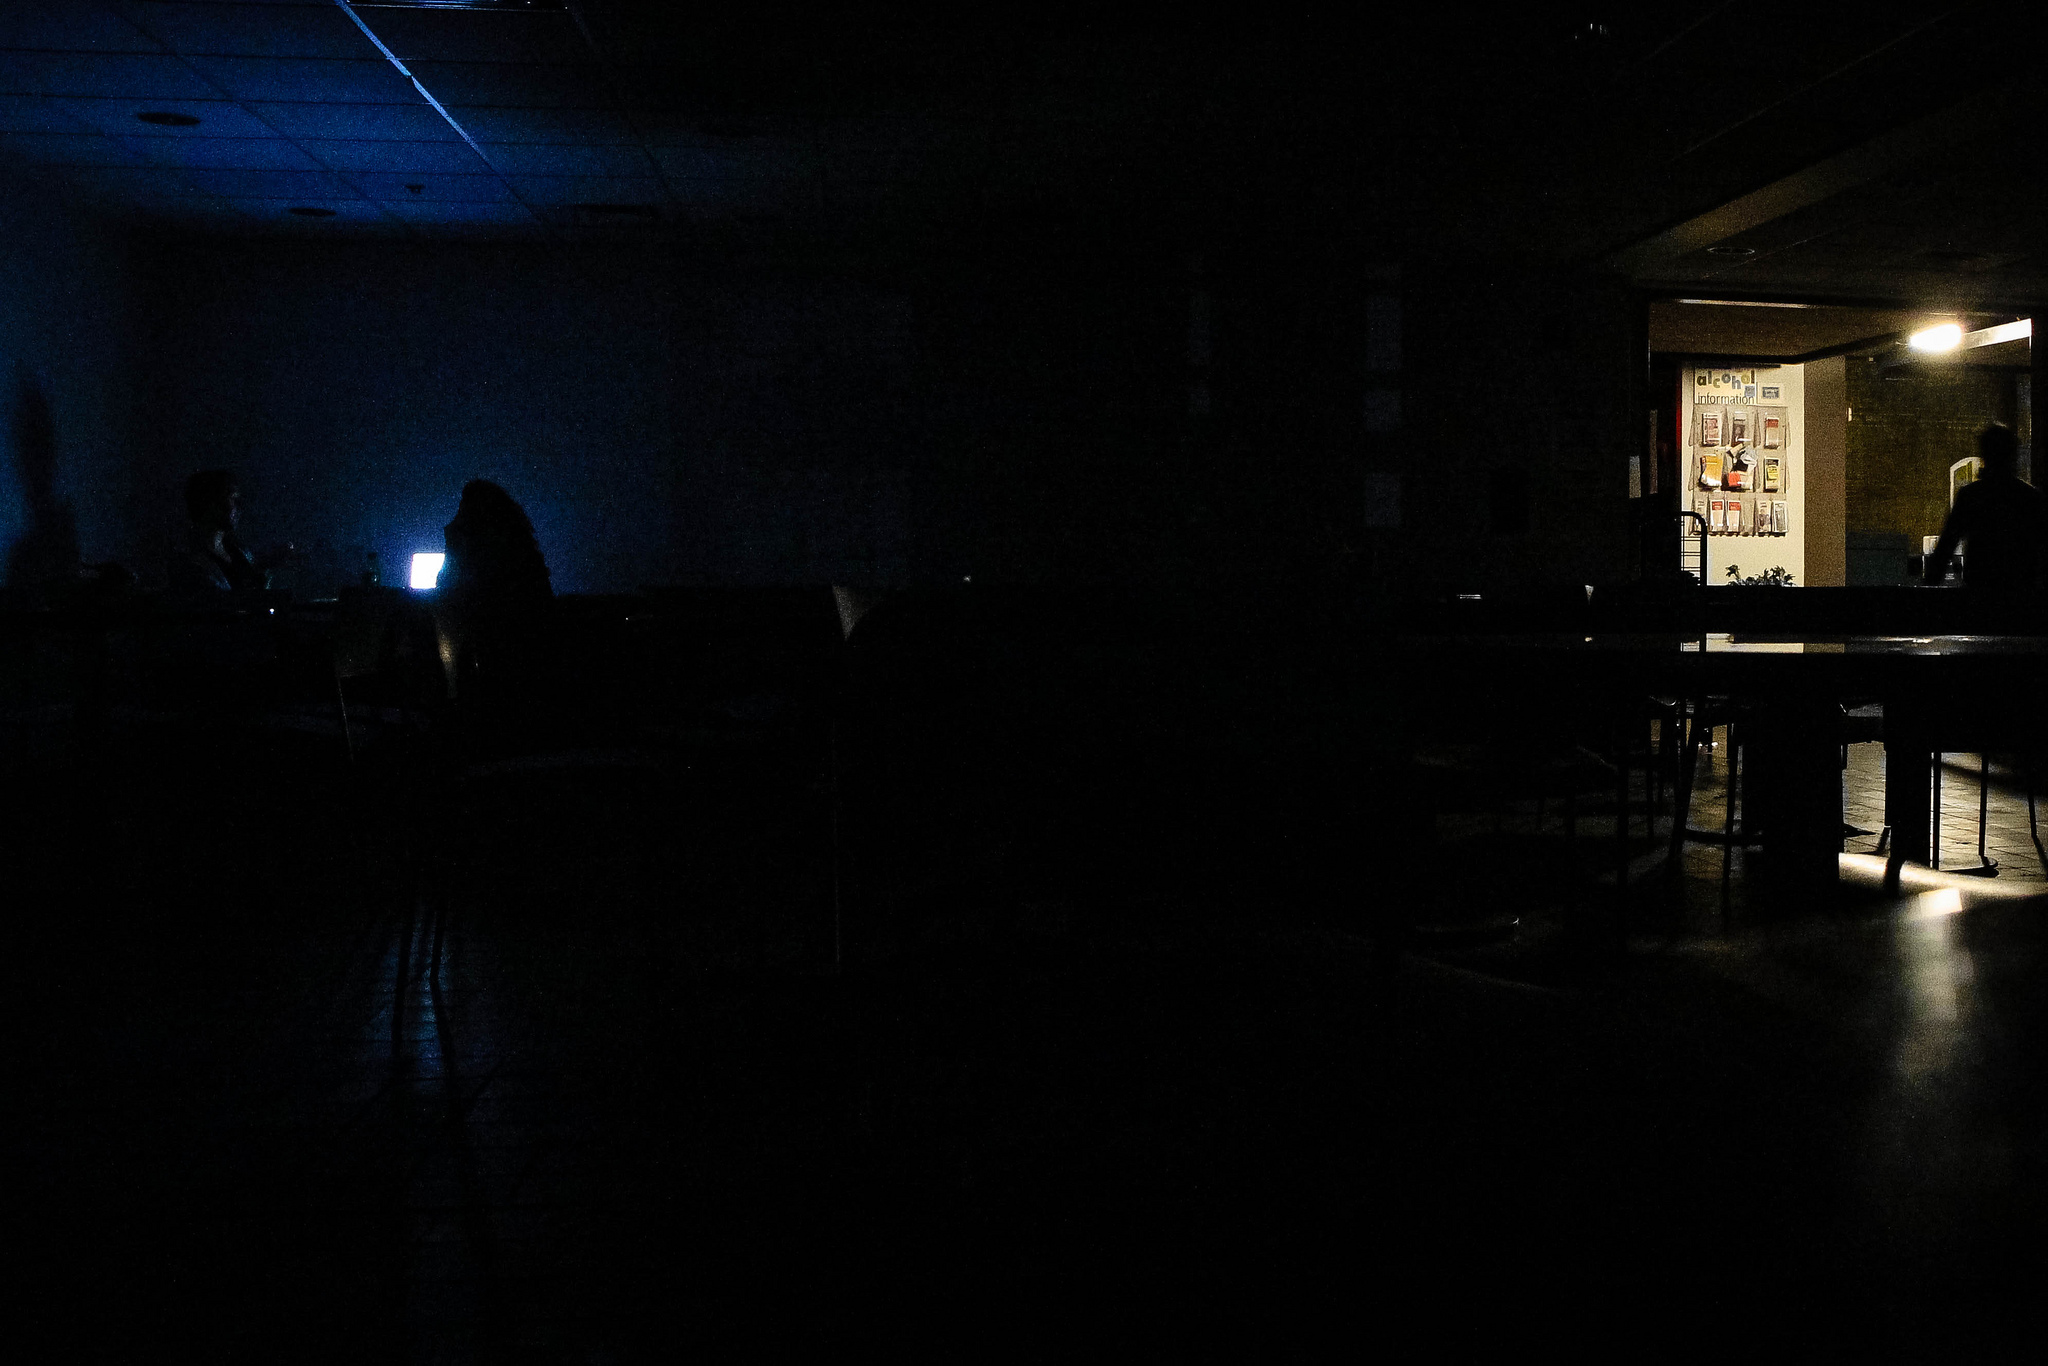 Power outage hits College, leaves half of campus in dark ...